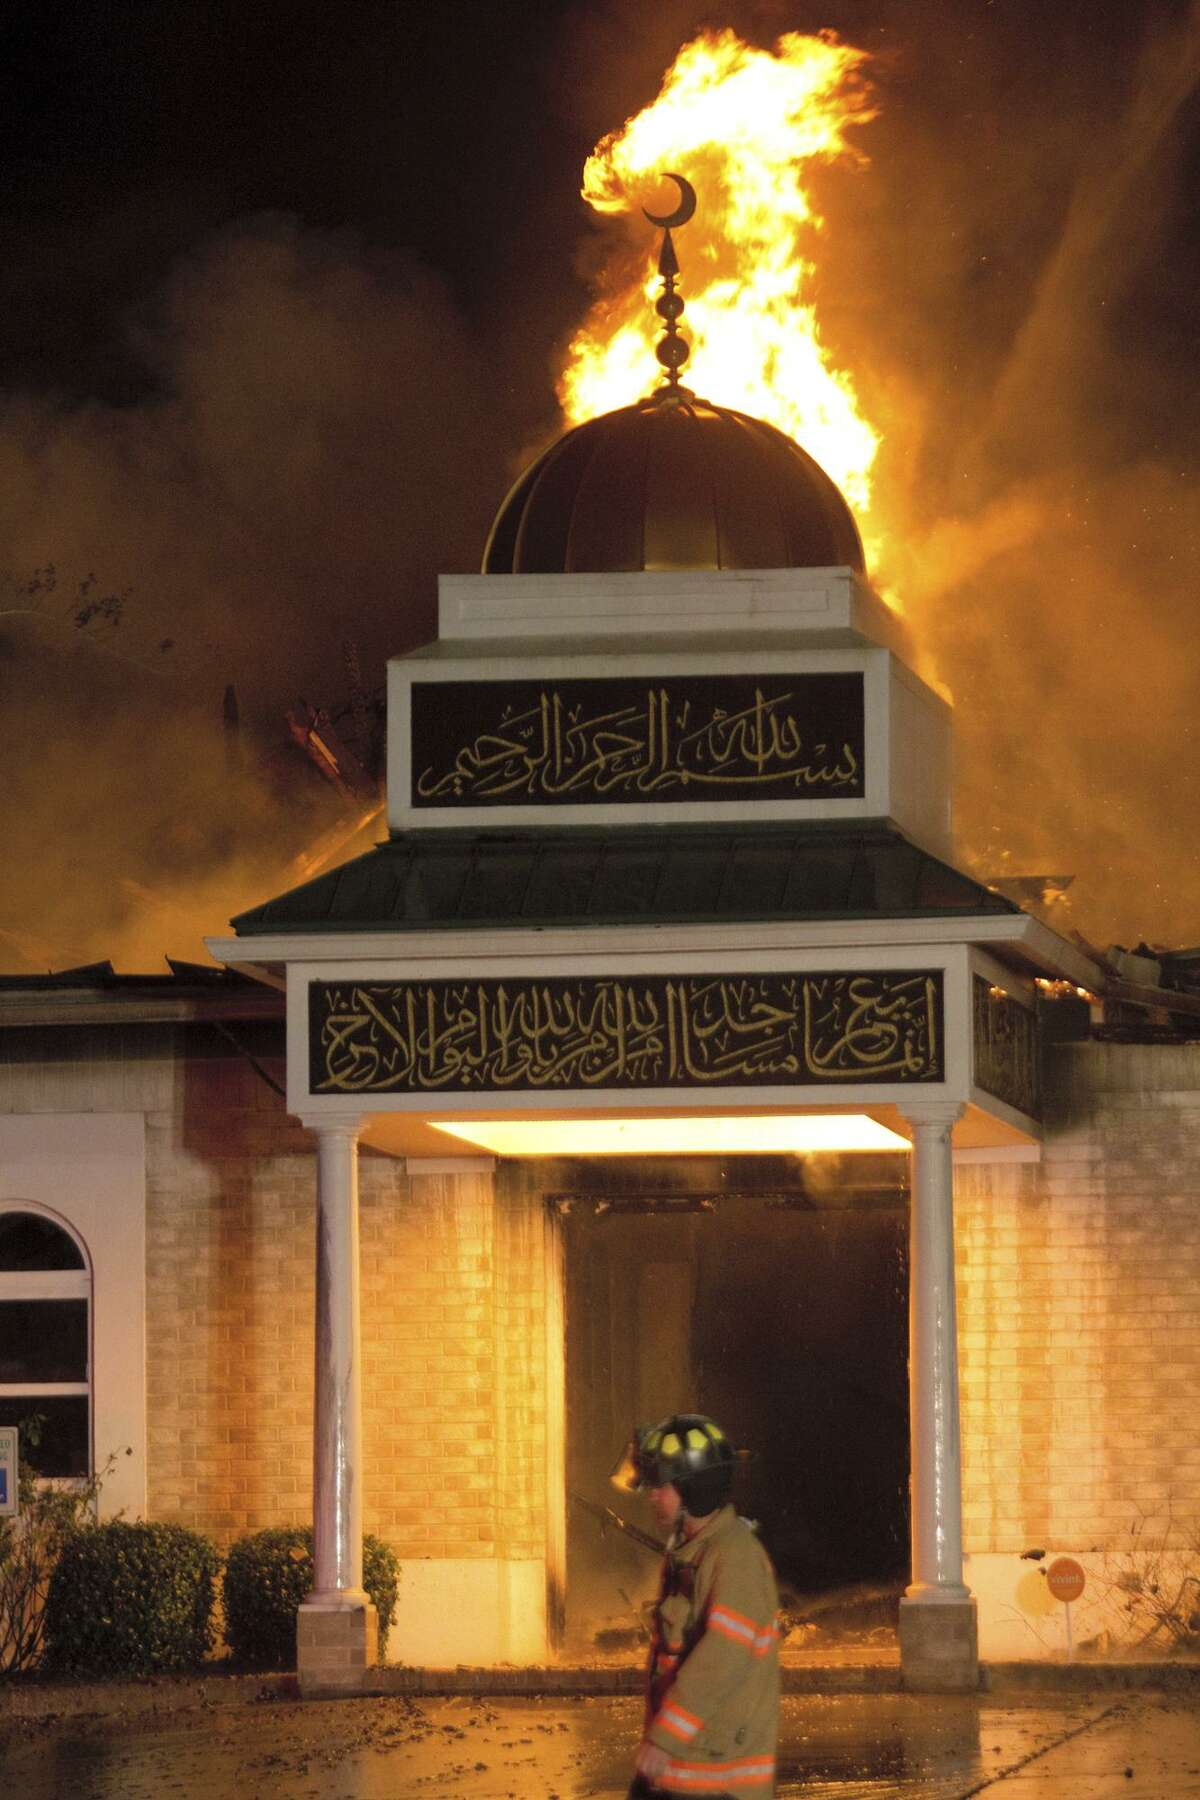 In July 2018, a 26-year-old man accused of lighting a Victoria mosque on fire in 2017 was found guilty of arson and commission of a hate crime. He faces up to 40 years in prison. Read more: Man accused of setting Victoria mosque fire found guilty